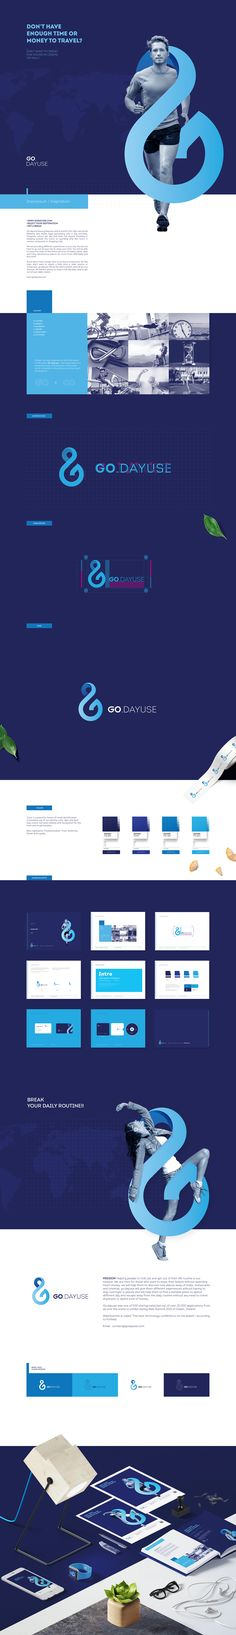 Go.dayuse (www.godayuse.com) is world's first day-use portal (Website and Mobile App) specializing only in day activities, hangouts, leisure per day that does not require traveling or sleeping outside the home or spending only few hours in cinema, restaur…